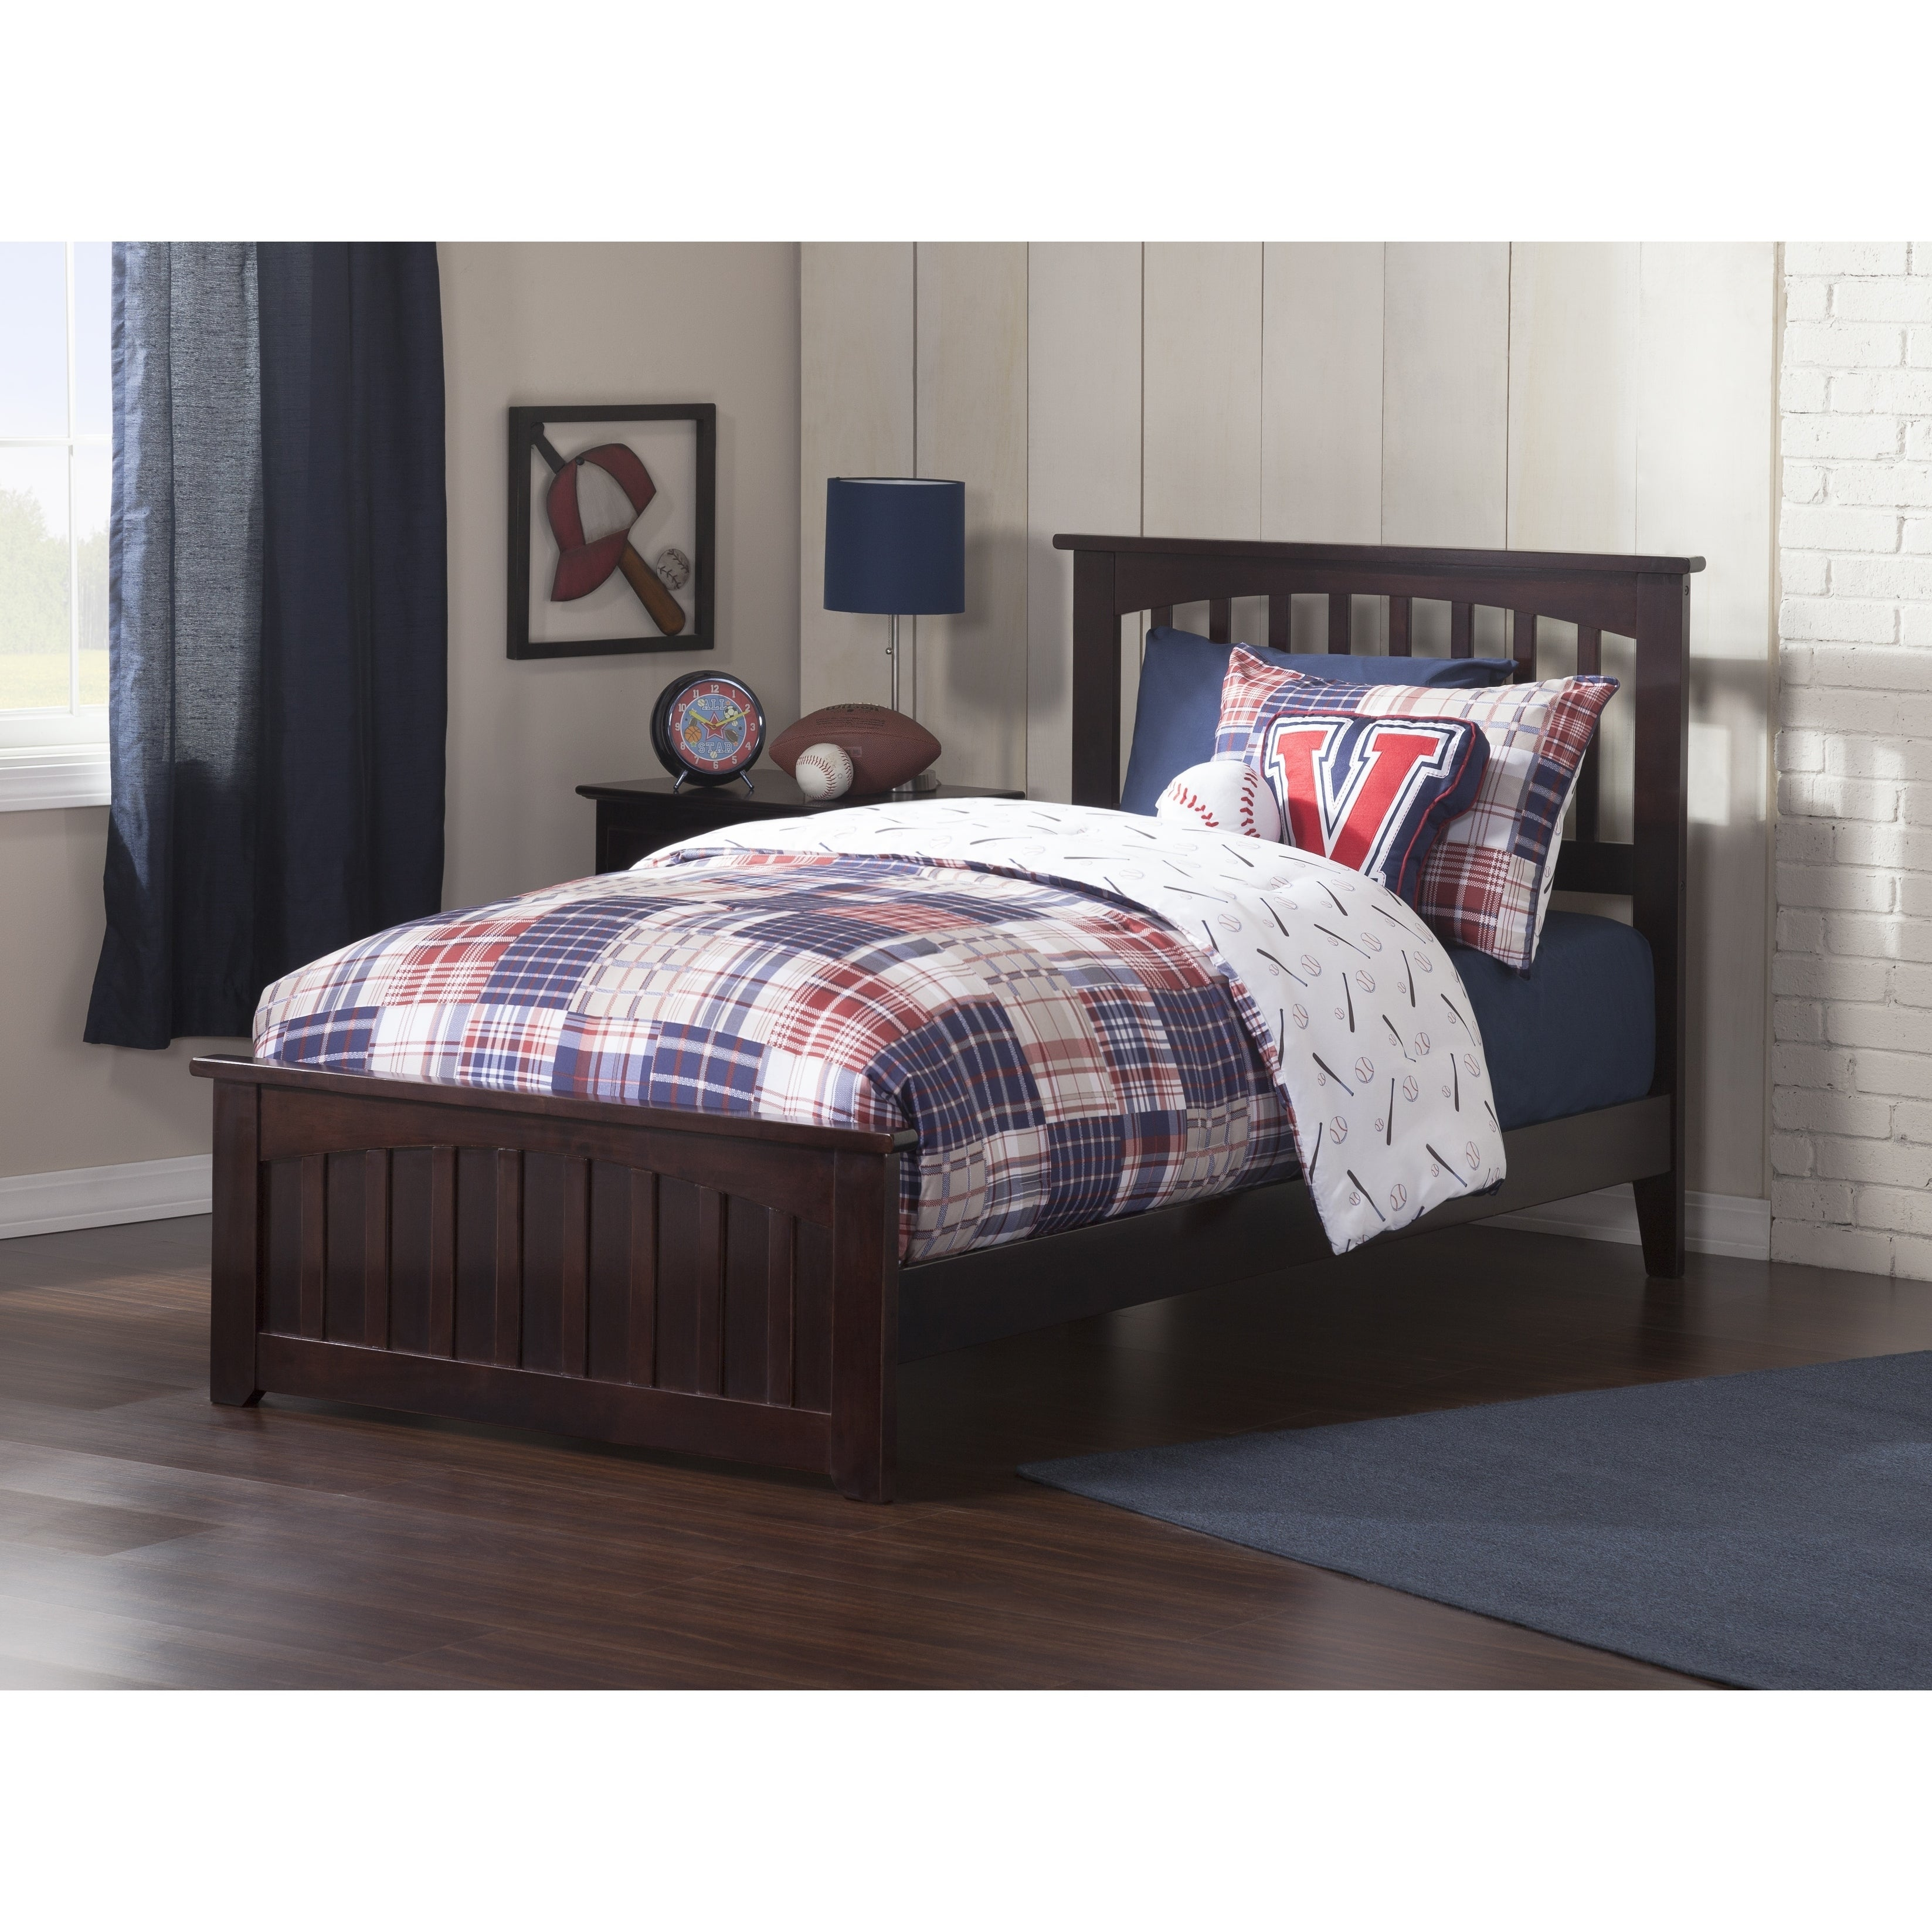 Mission Twin Bed With Matching Foot Board In Espresso On Sale Overstock 17833758